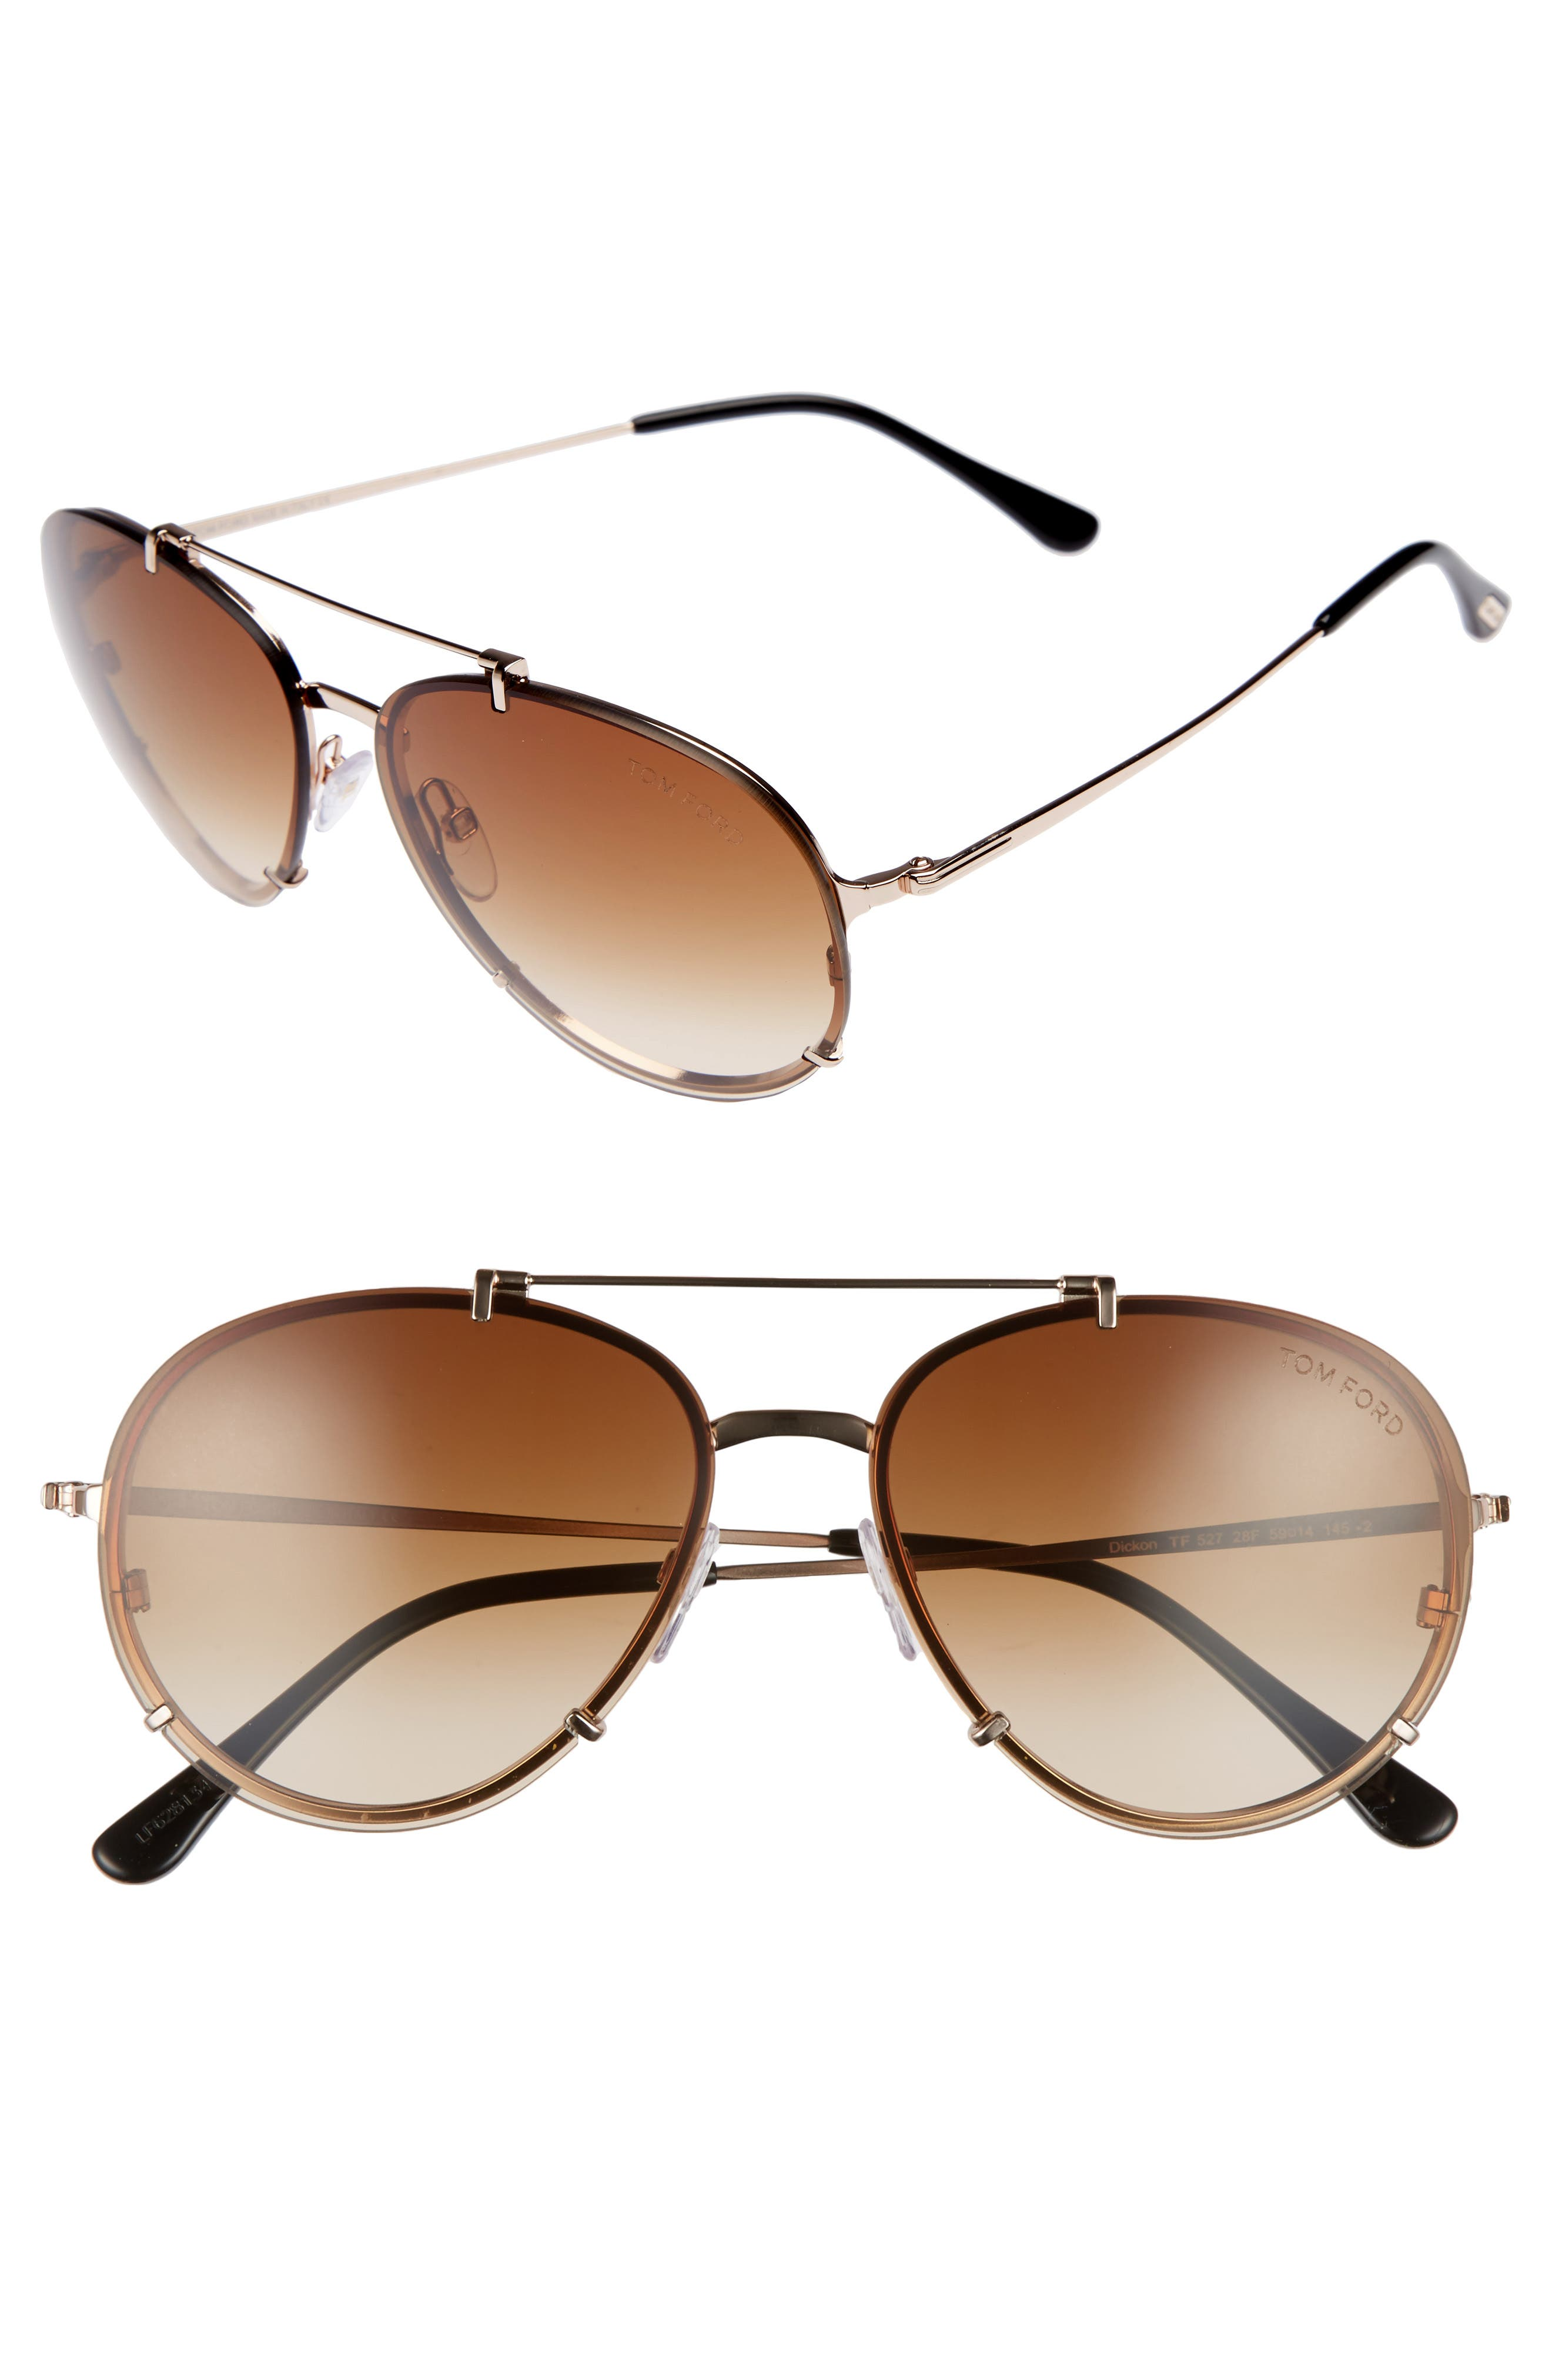 Dickon 59mm Aviator Sunglasses,                         Main,                         color, ROSE GOLD/ BROWN